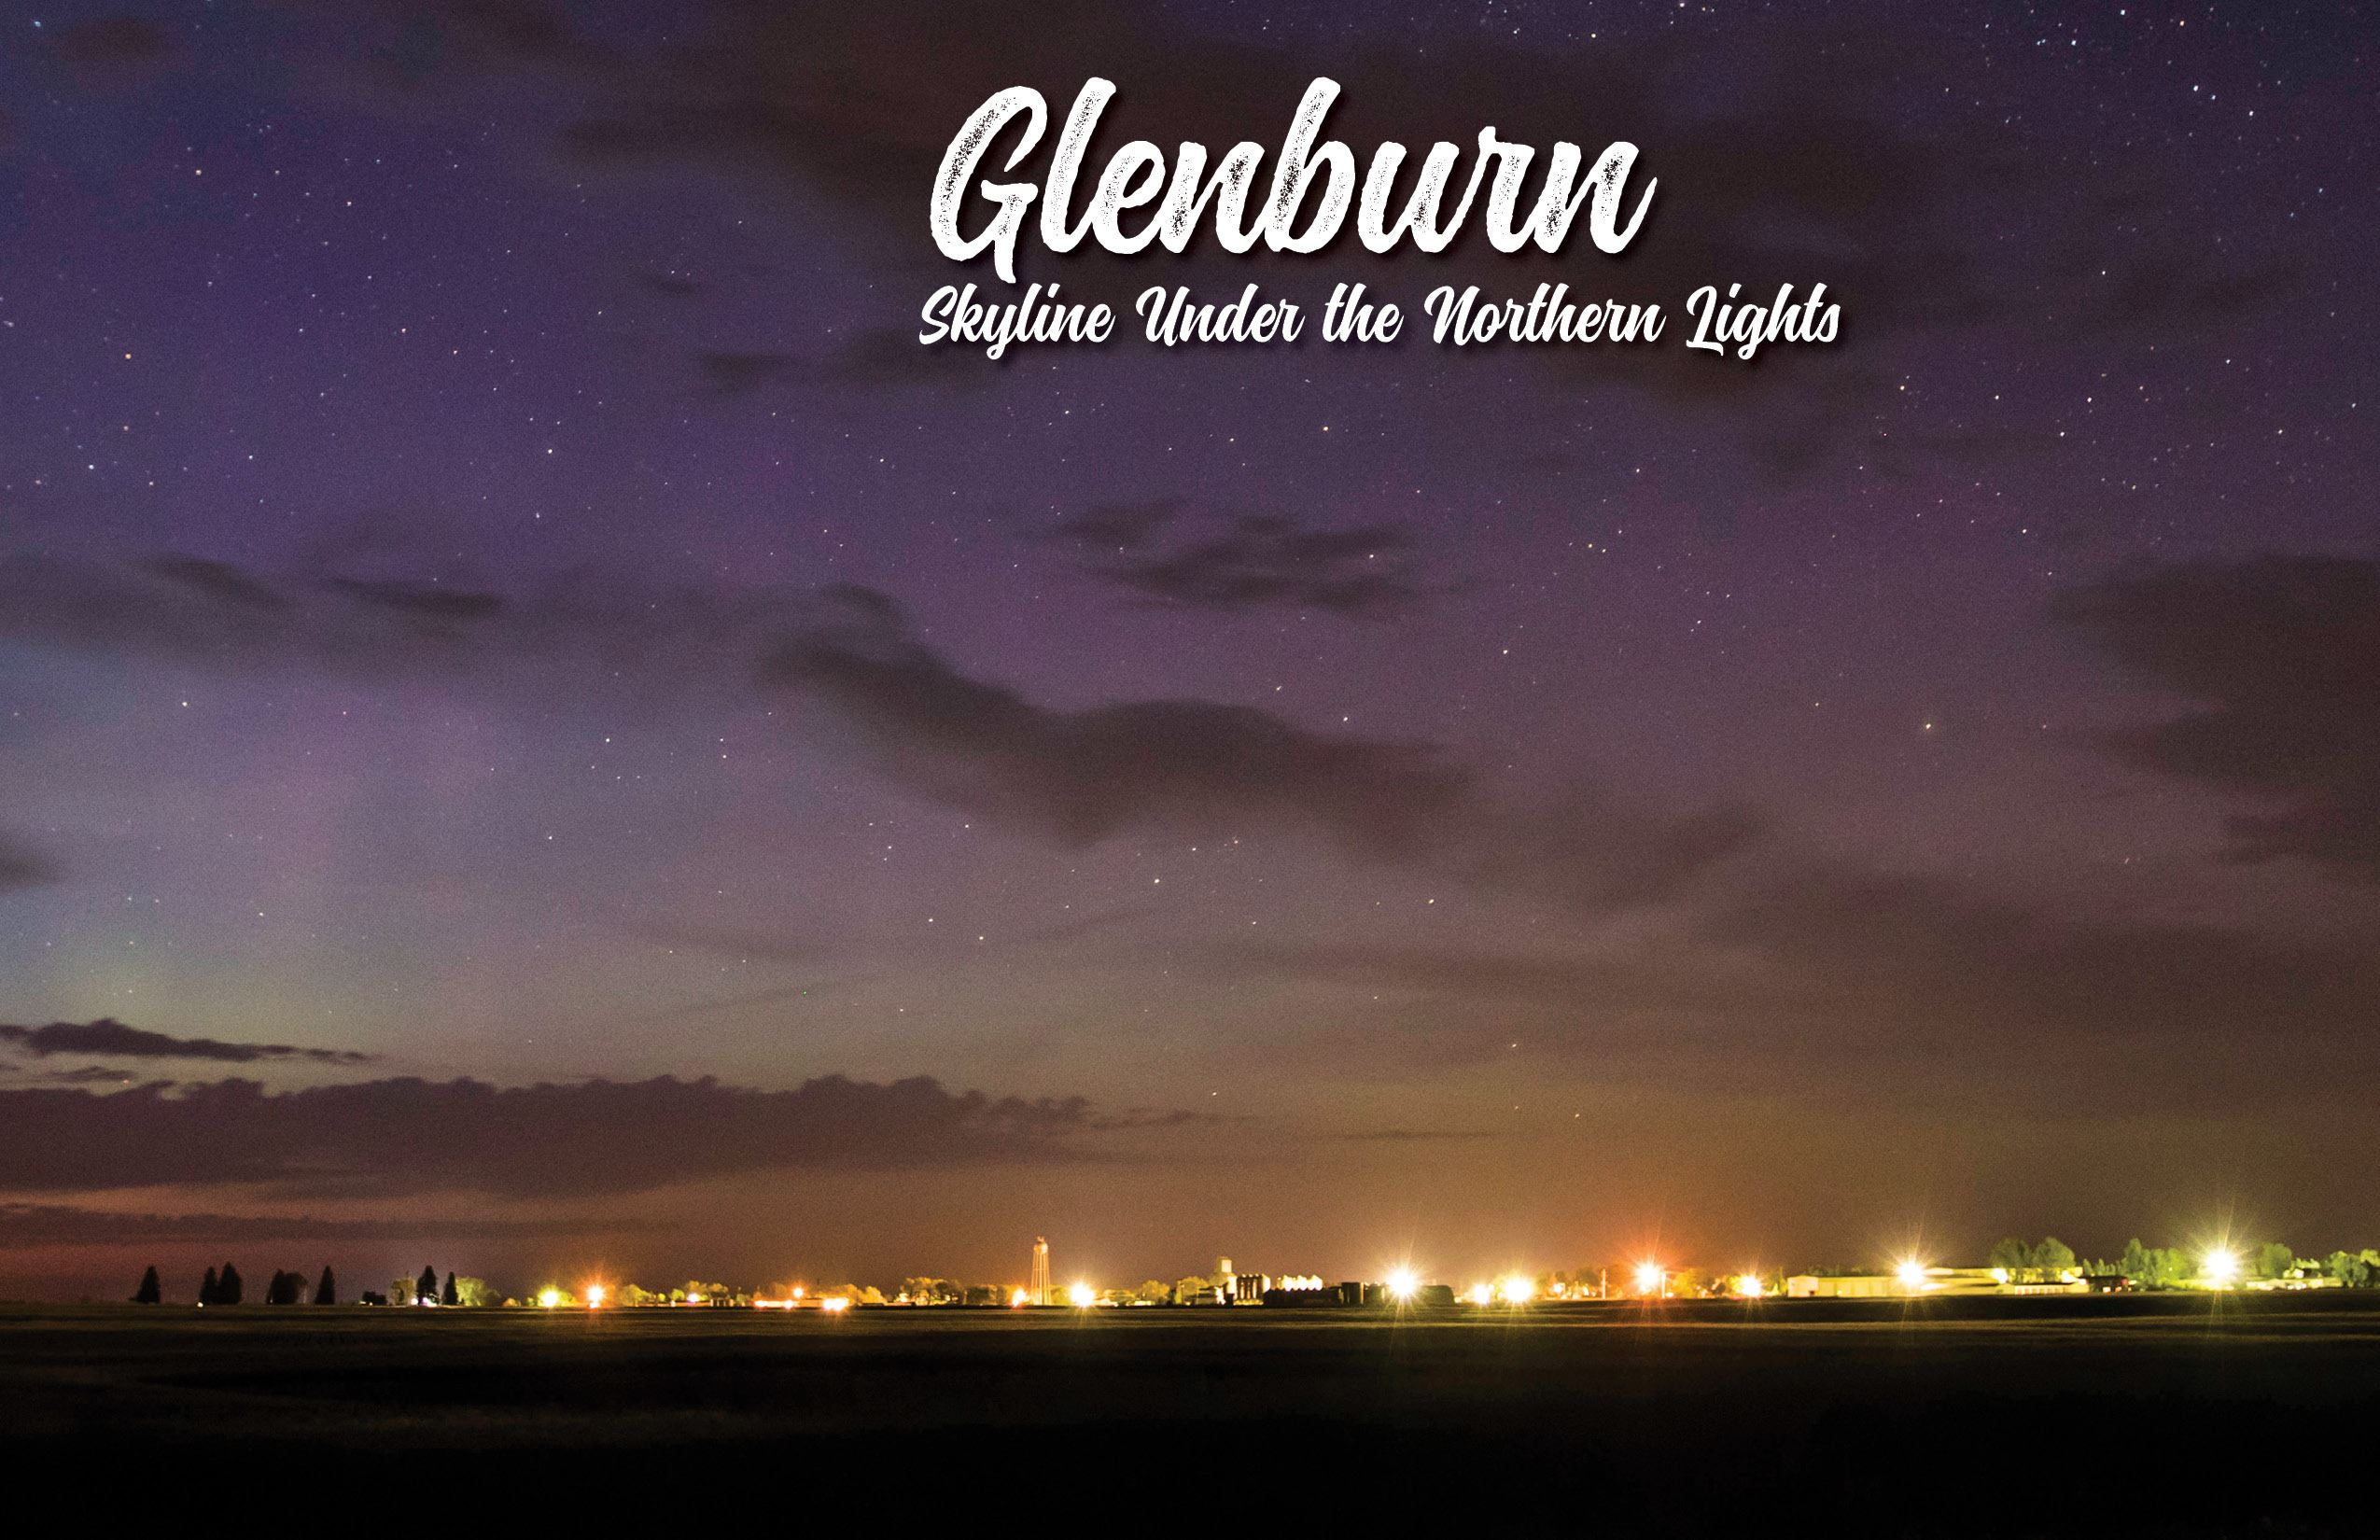 Glenburn Norhtern Lights